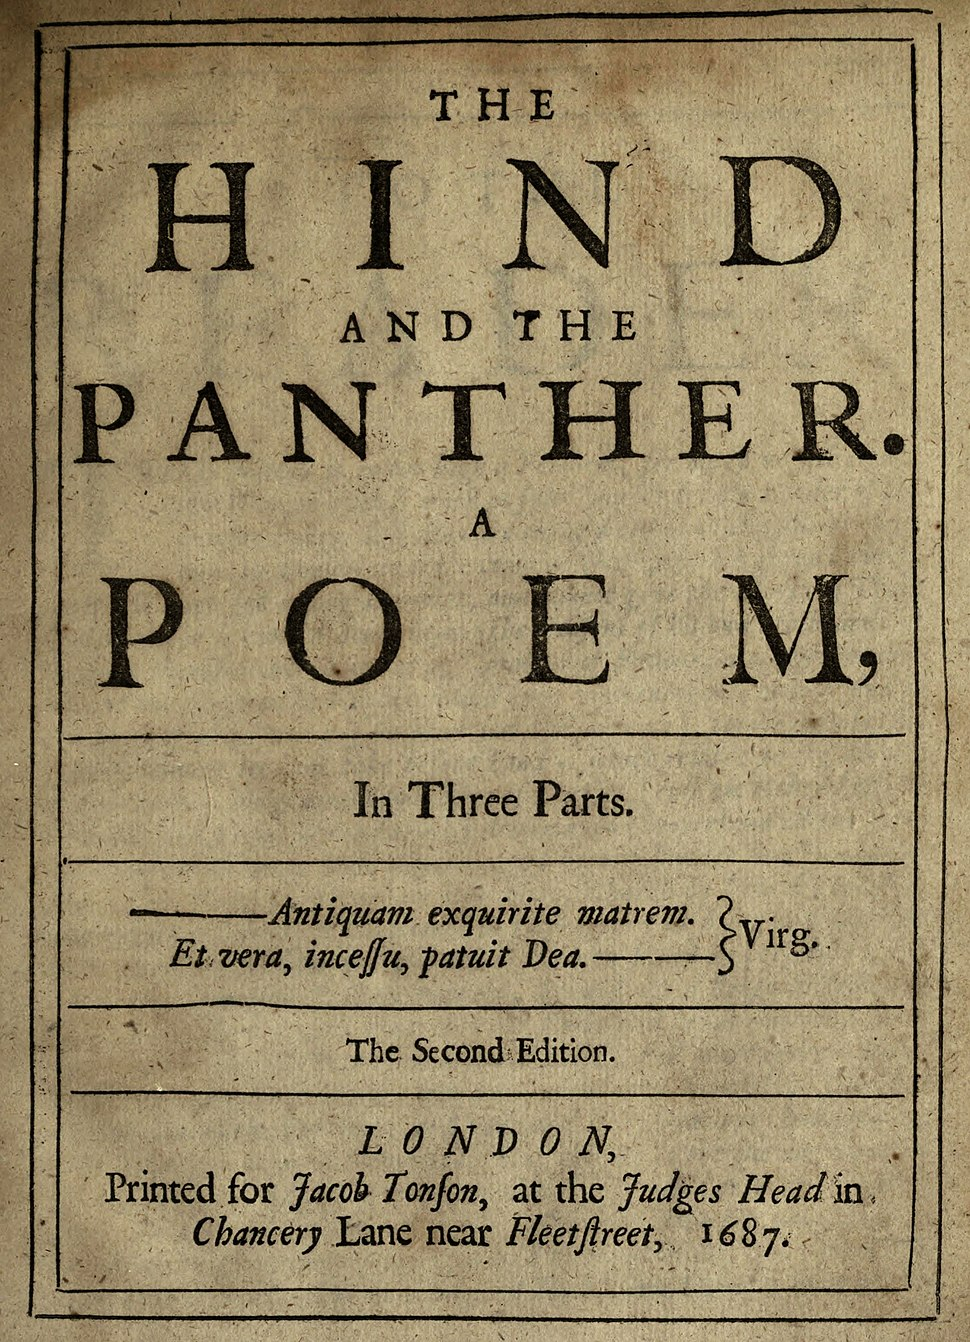 The Hind and the Panther 1687